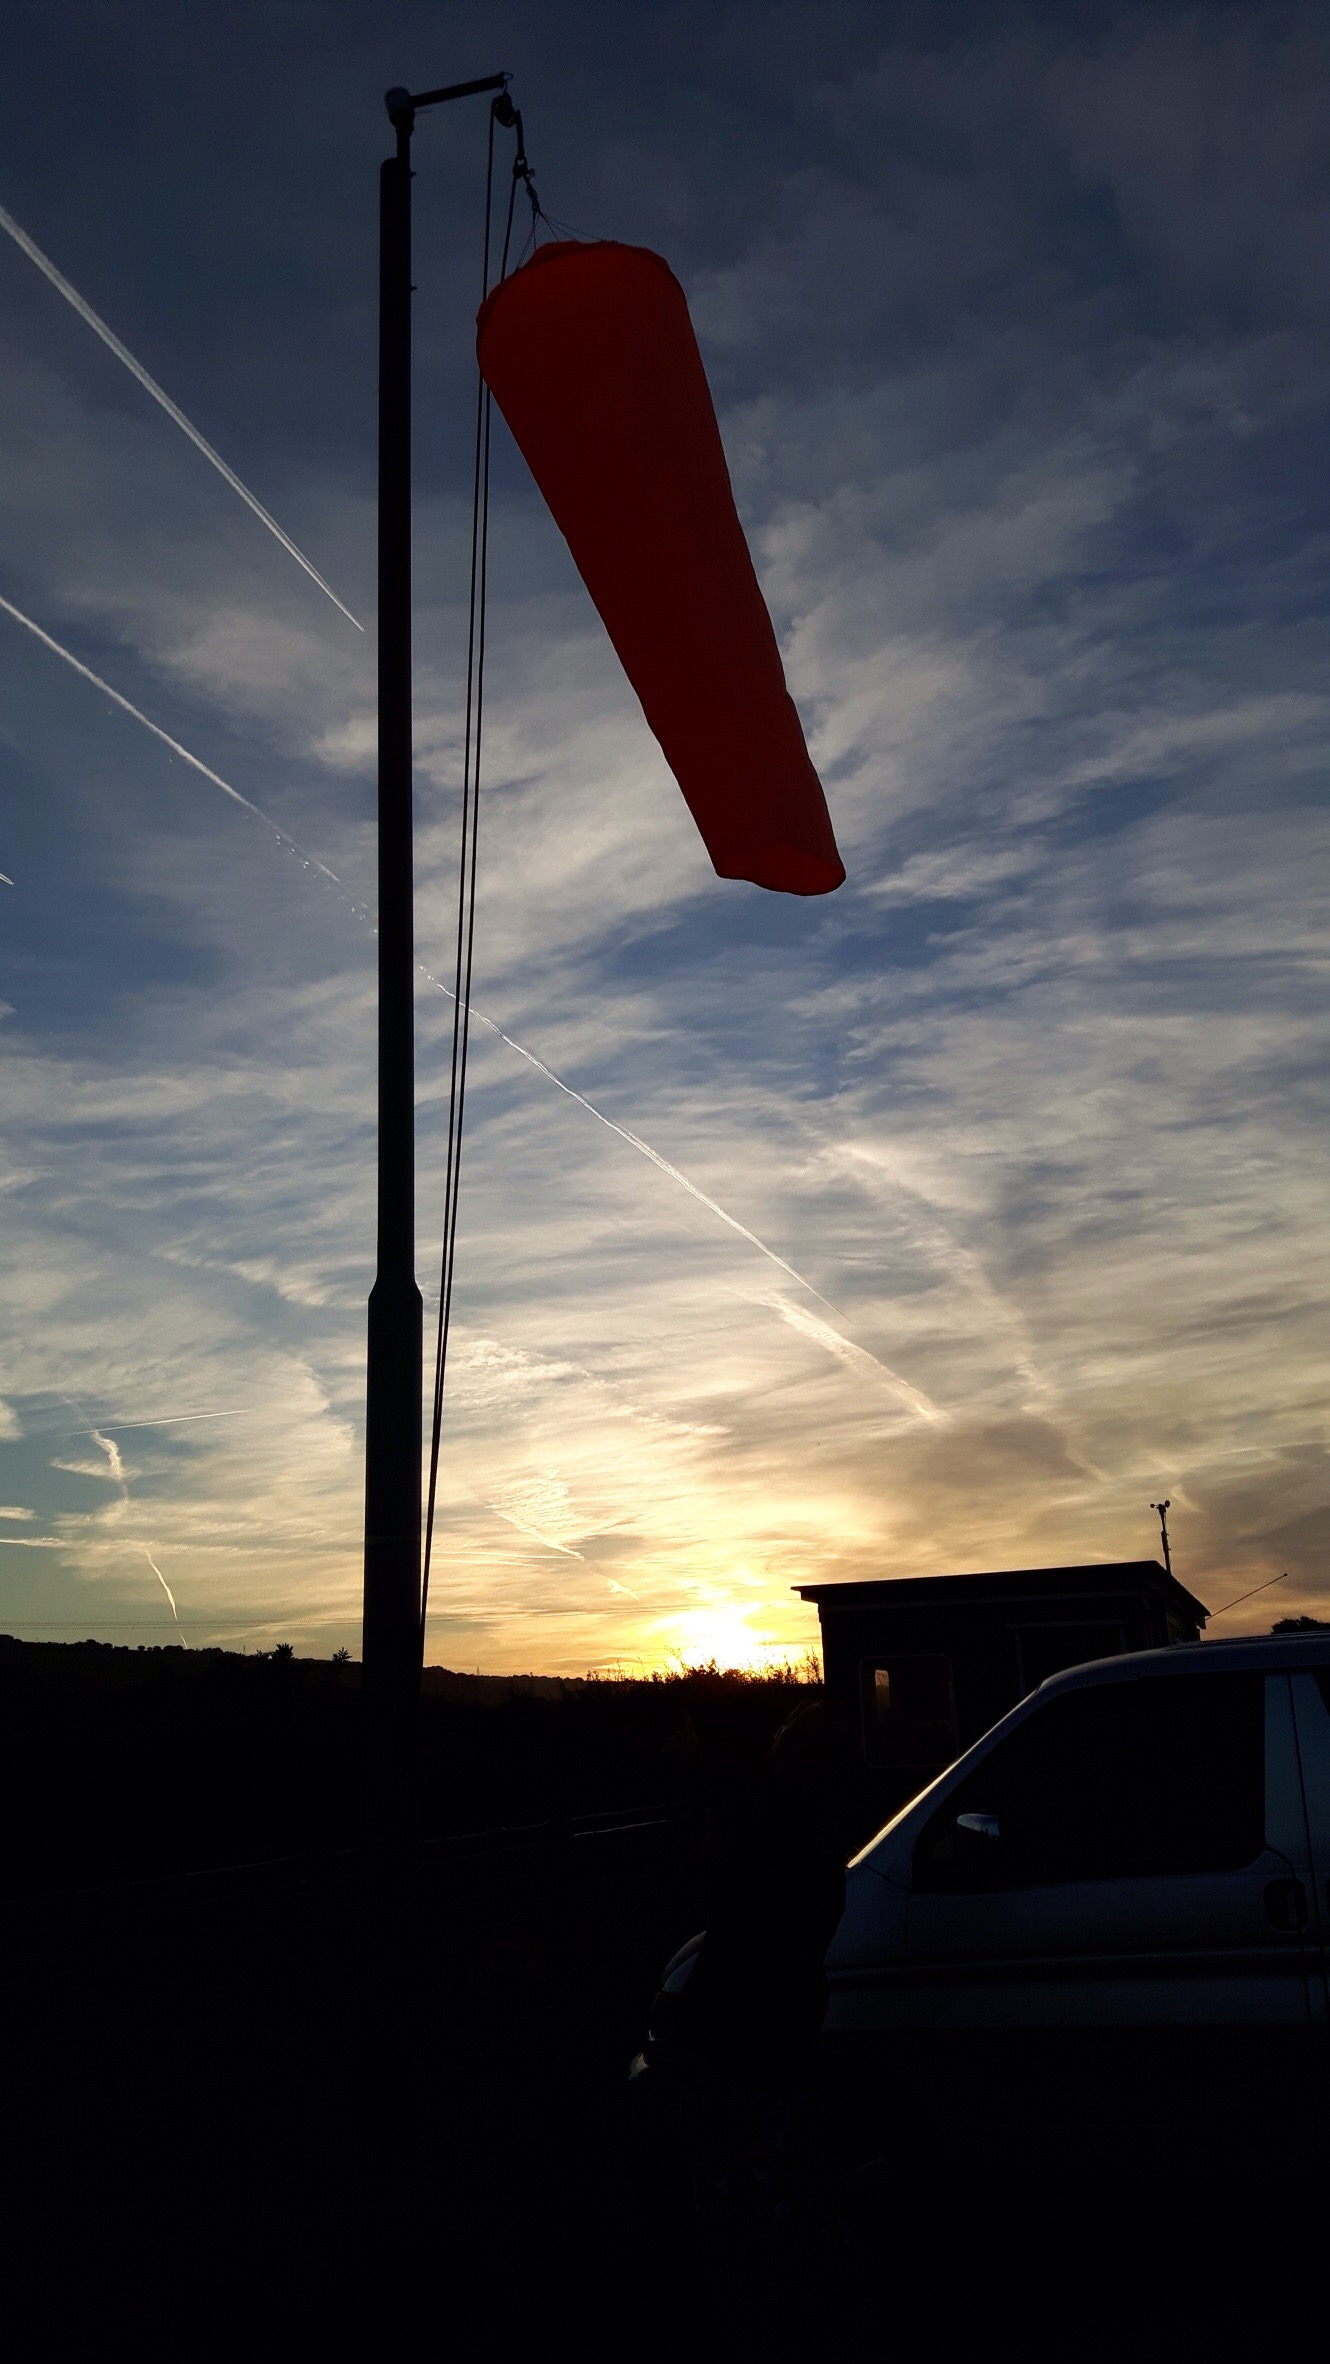 Limp windsock at sunrise